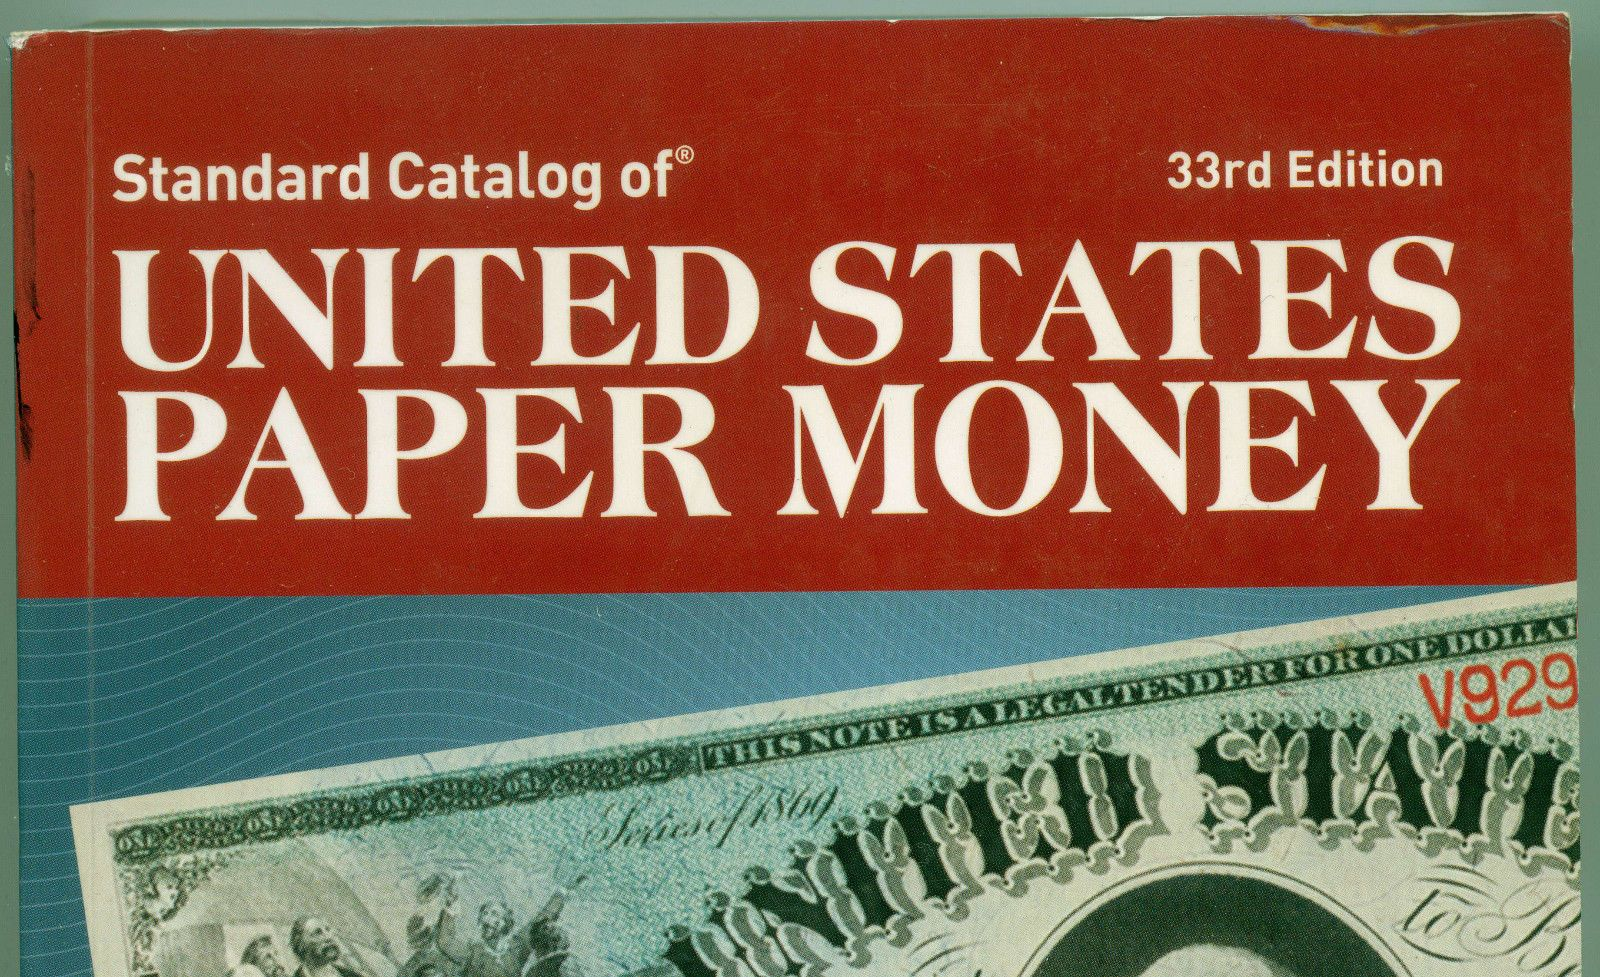 world paper money price guide Paper money price guide 5 dollar bill confederate states currency civil war note t graded photo paper money price guide paper money world other n paper money previous 1 2 3 4 5 6 7 next.